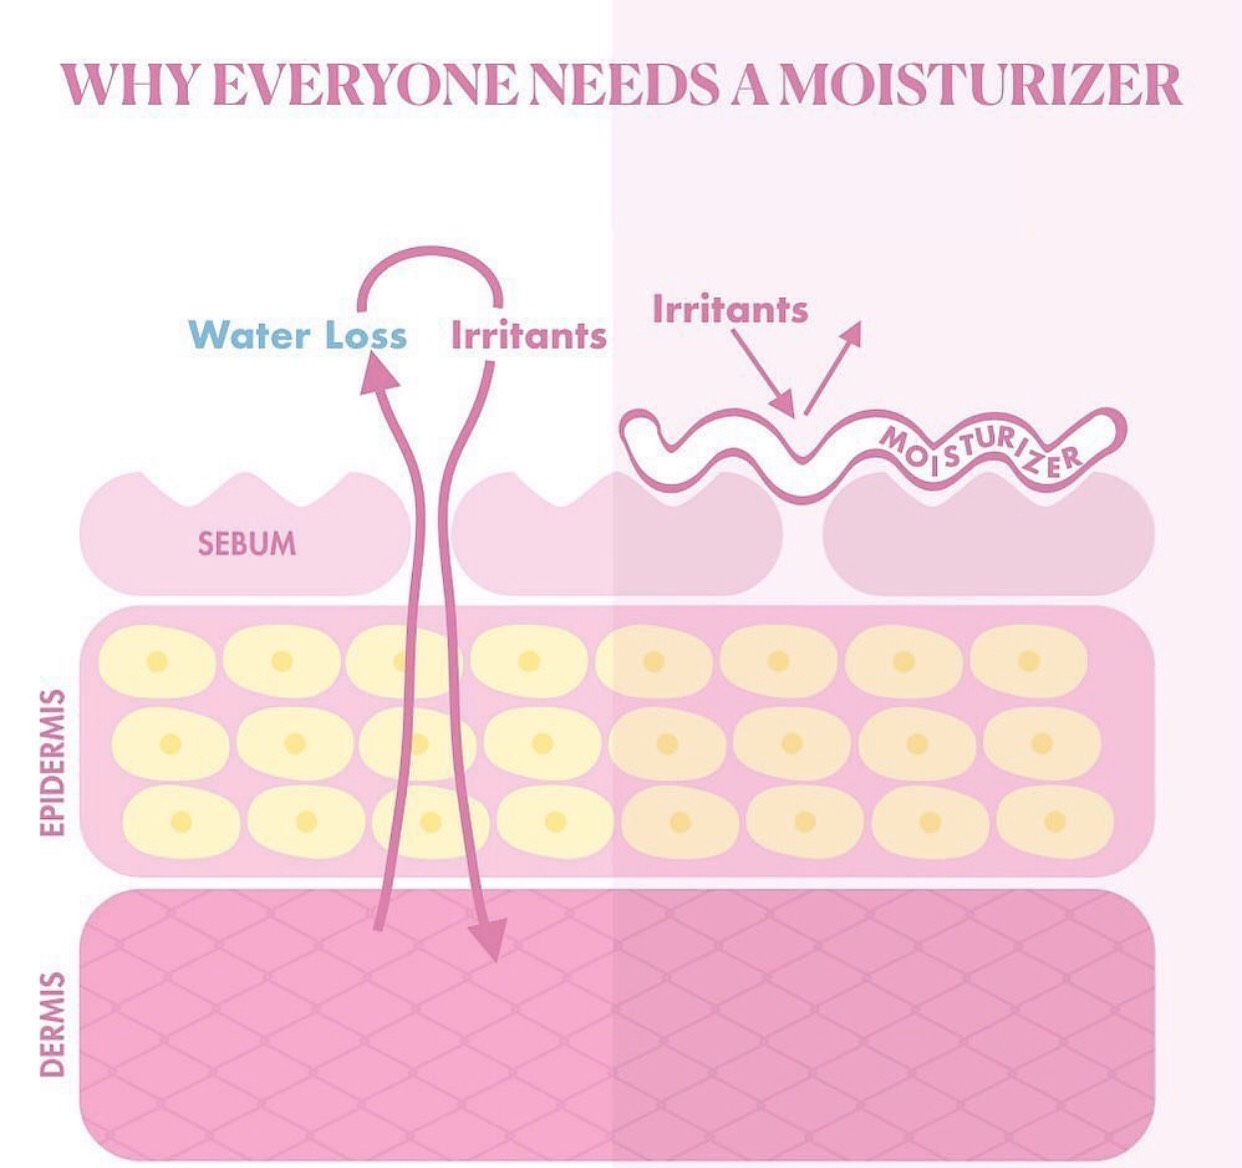 WHY EVERYONE NEEDS A MOISTURIZER ?